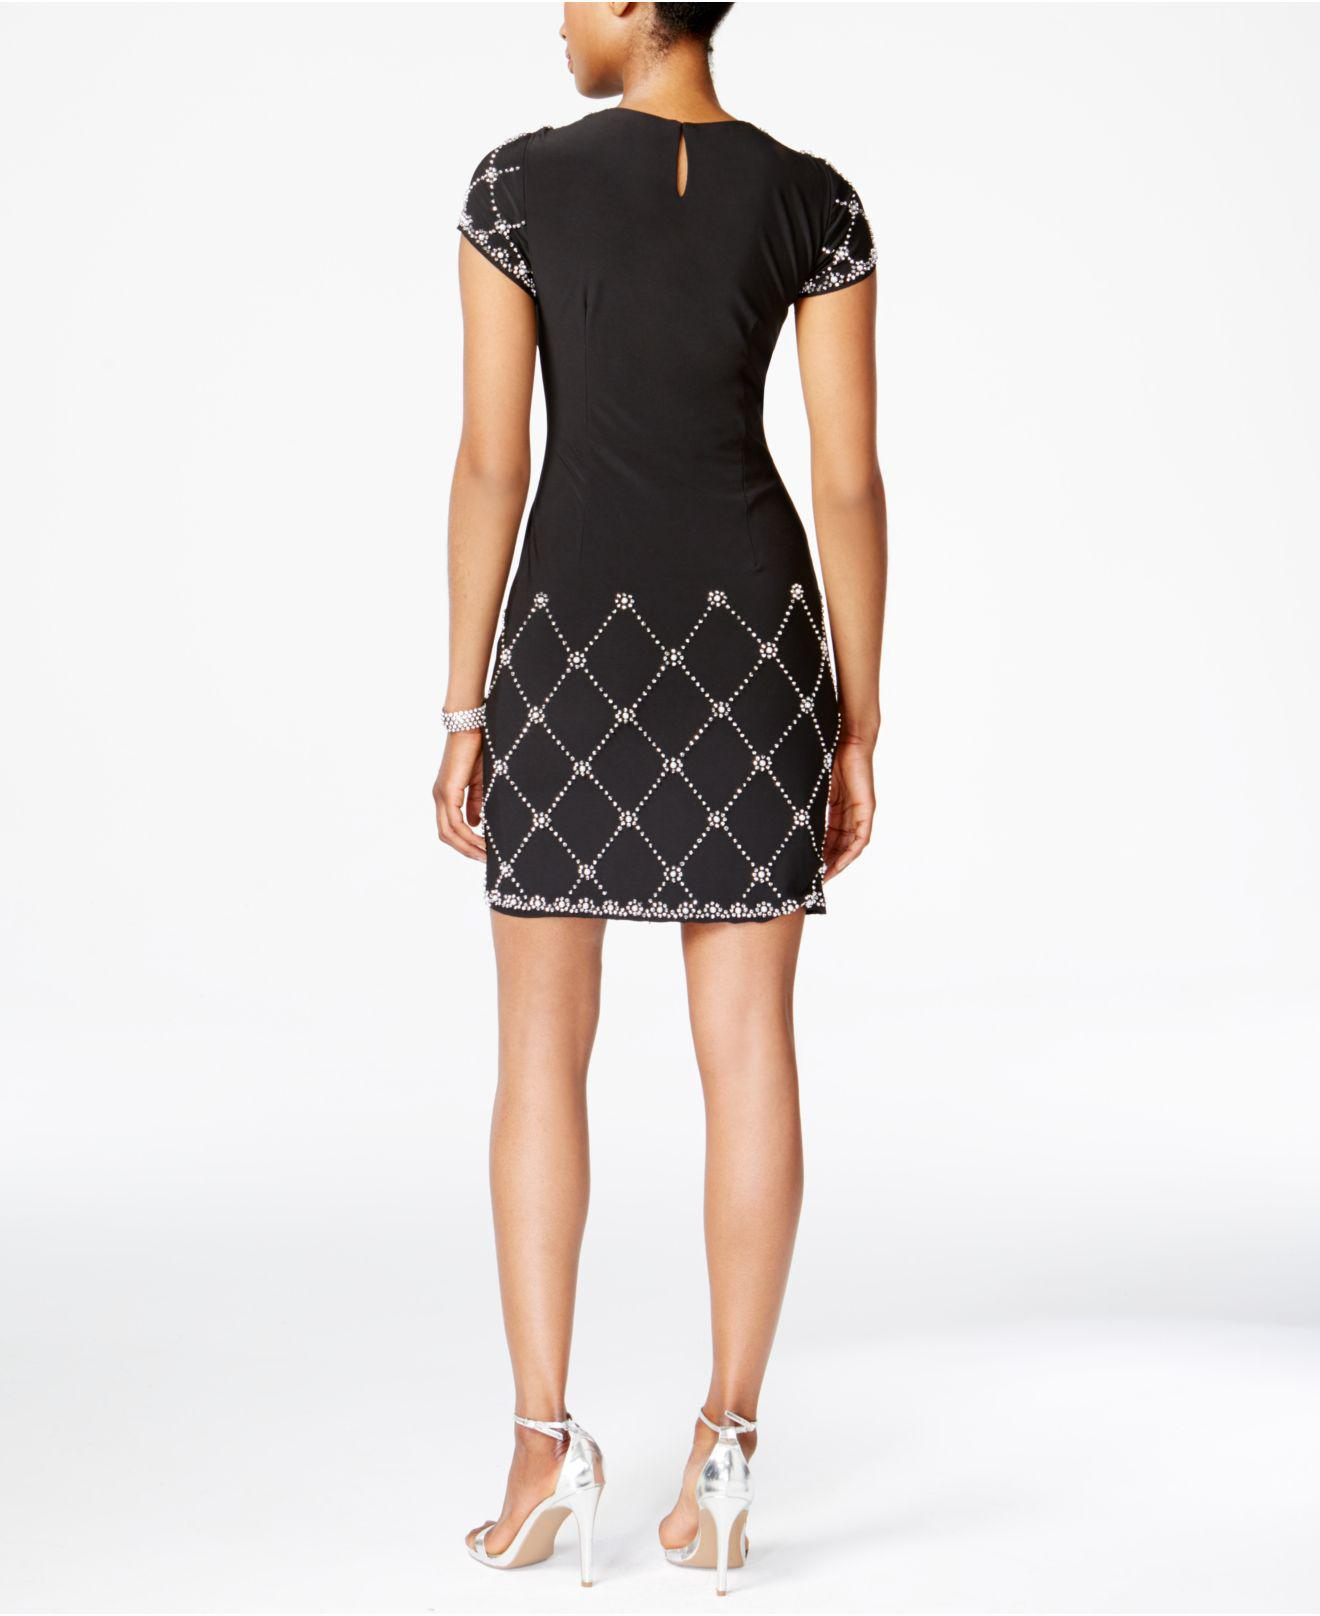 5a05decccac Lyst - Betsy   Adam Embellished Shift Dress in Black - Save  40.15444015444015%